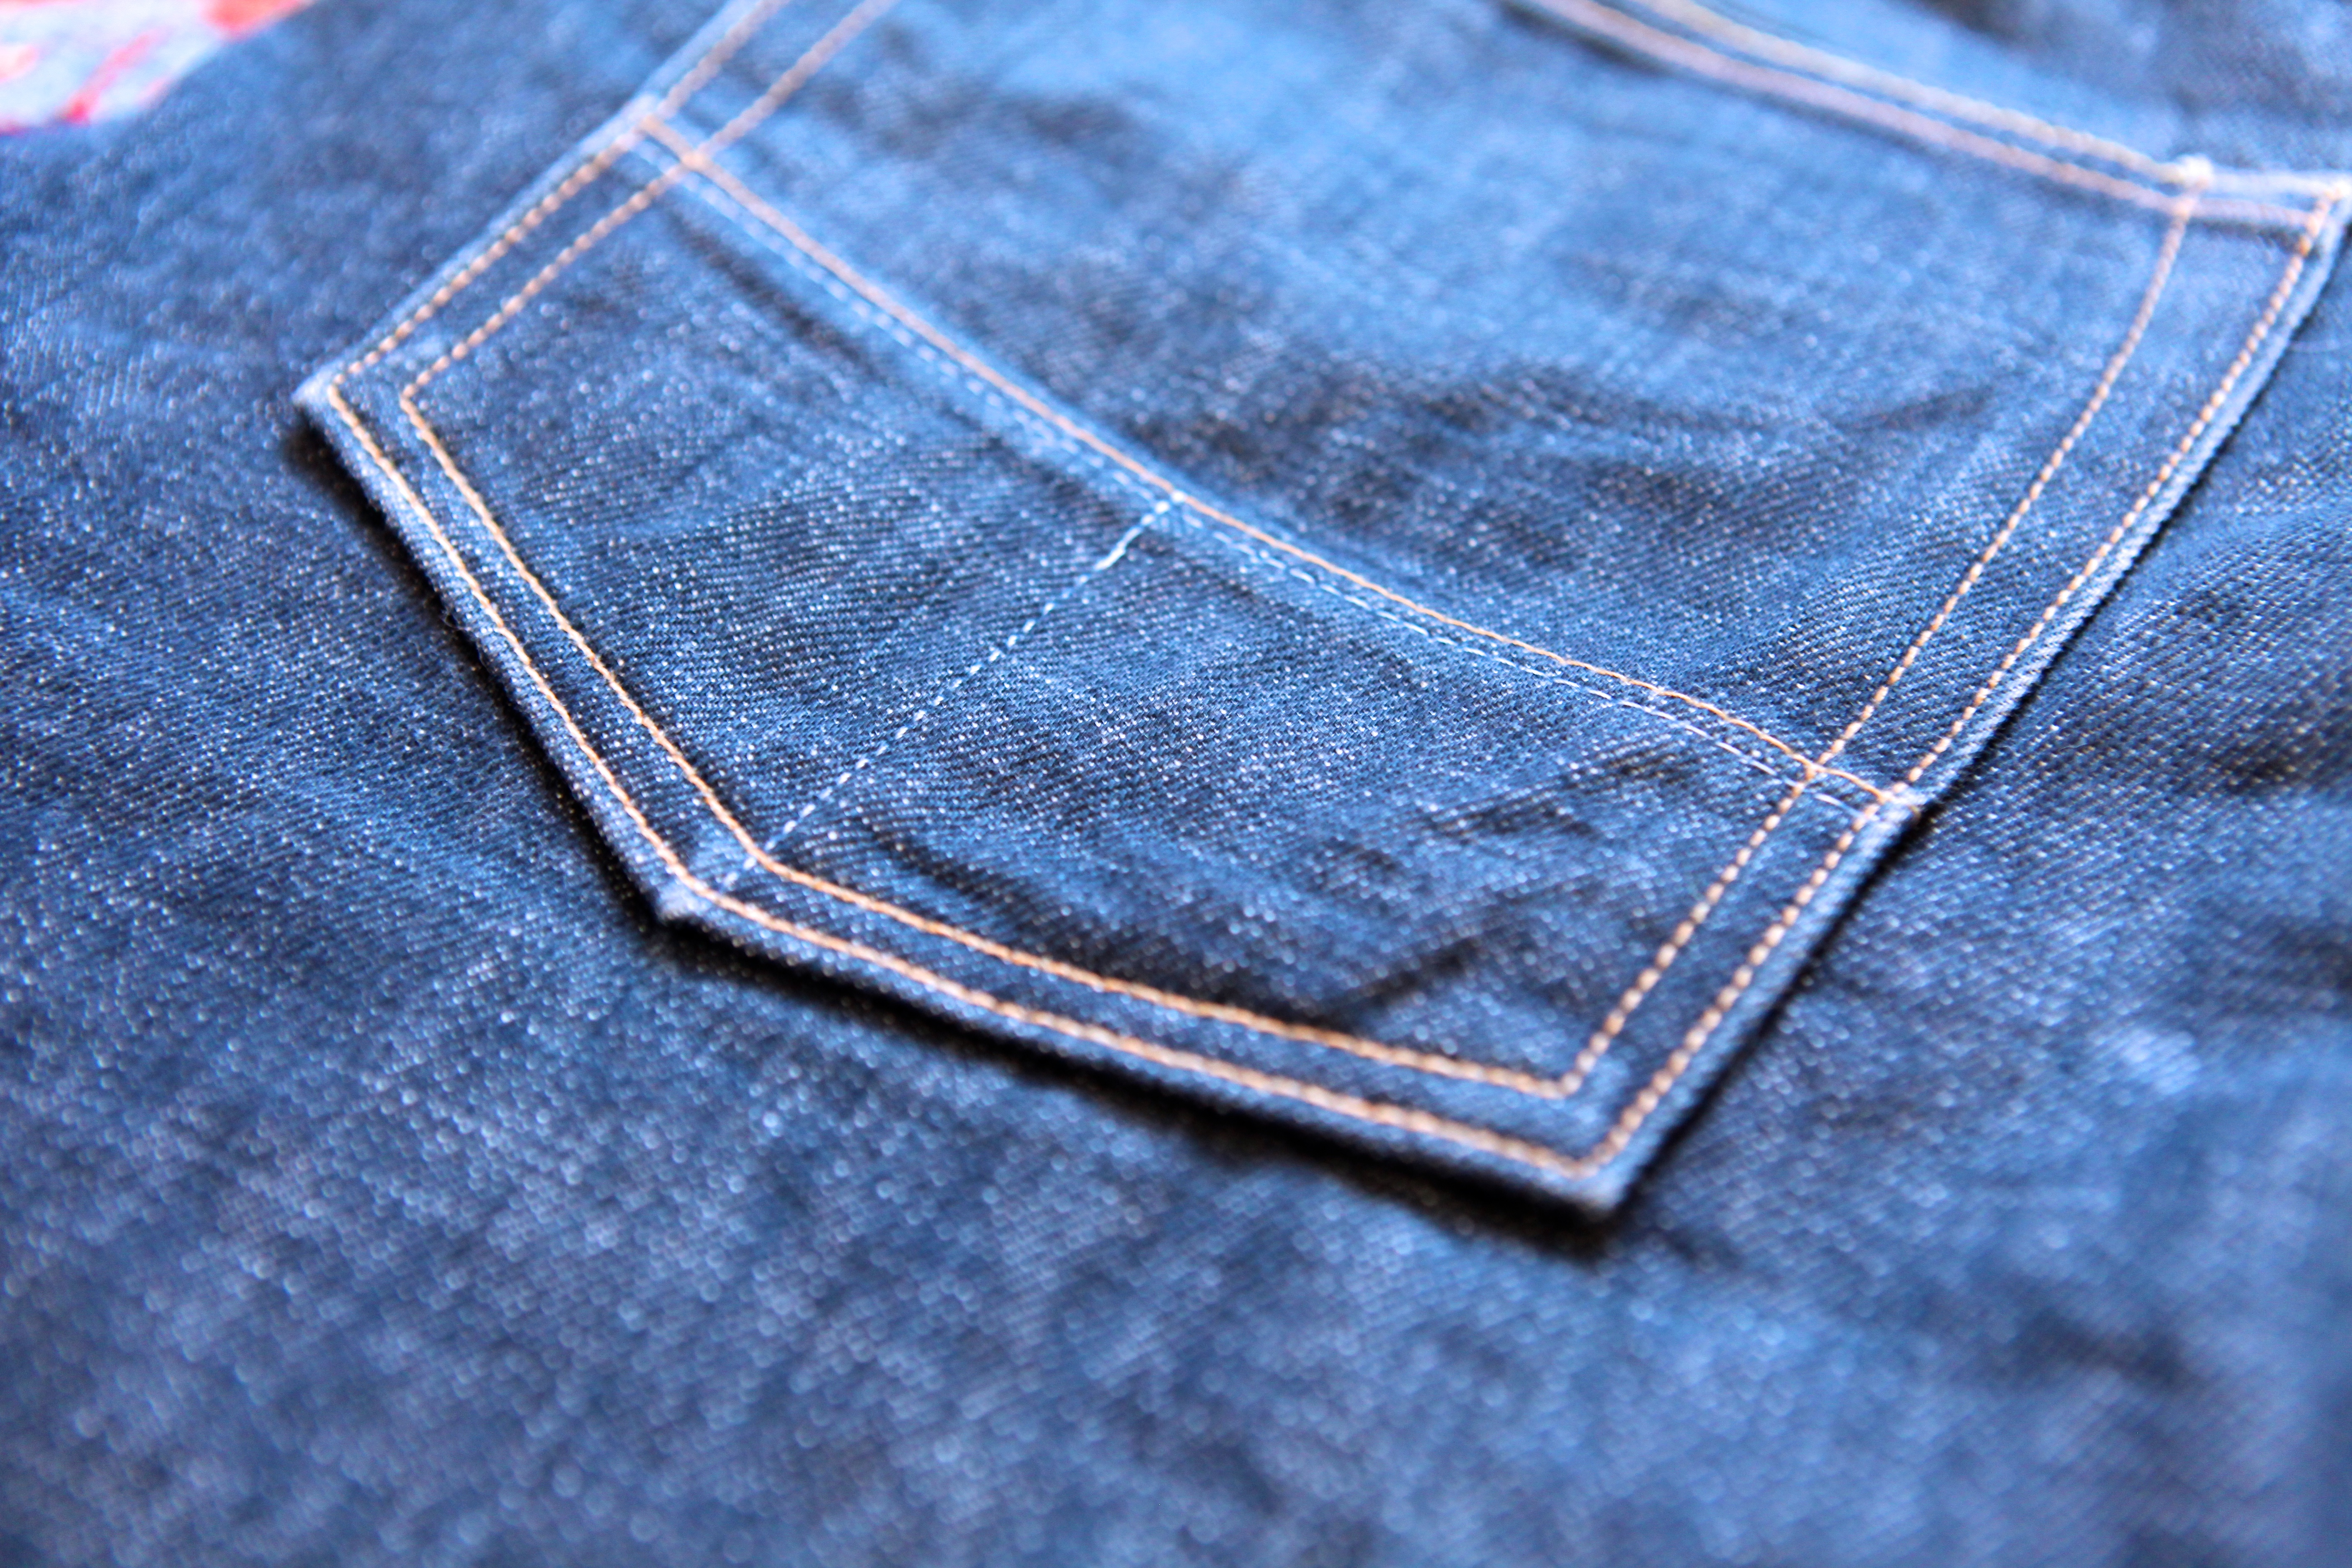 FileTellason jeans back pocket.jpg - Wikimedia Commons